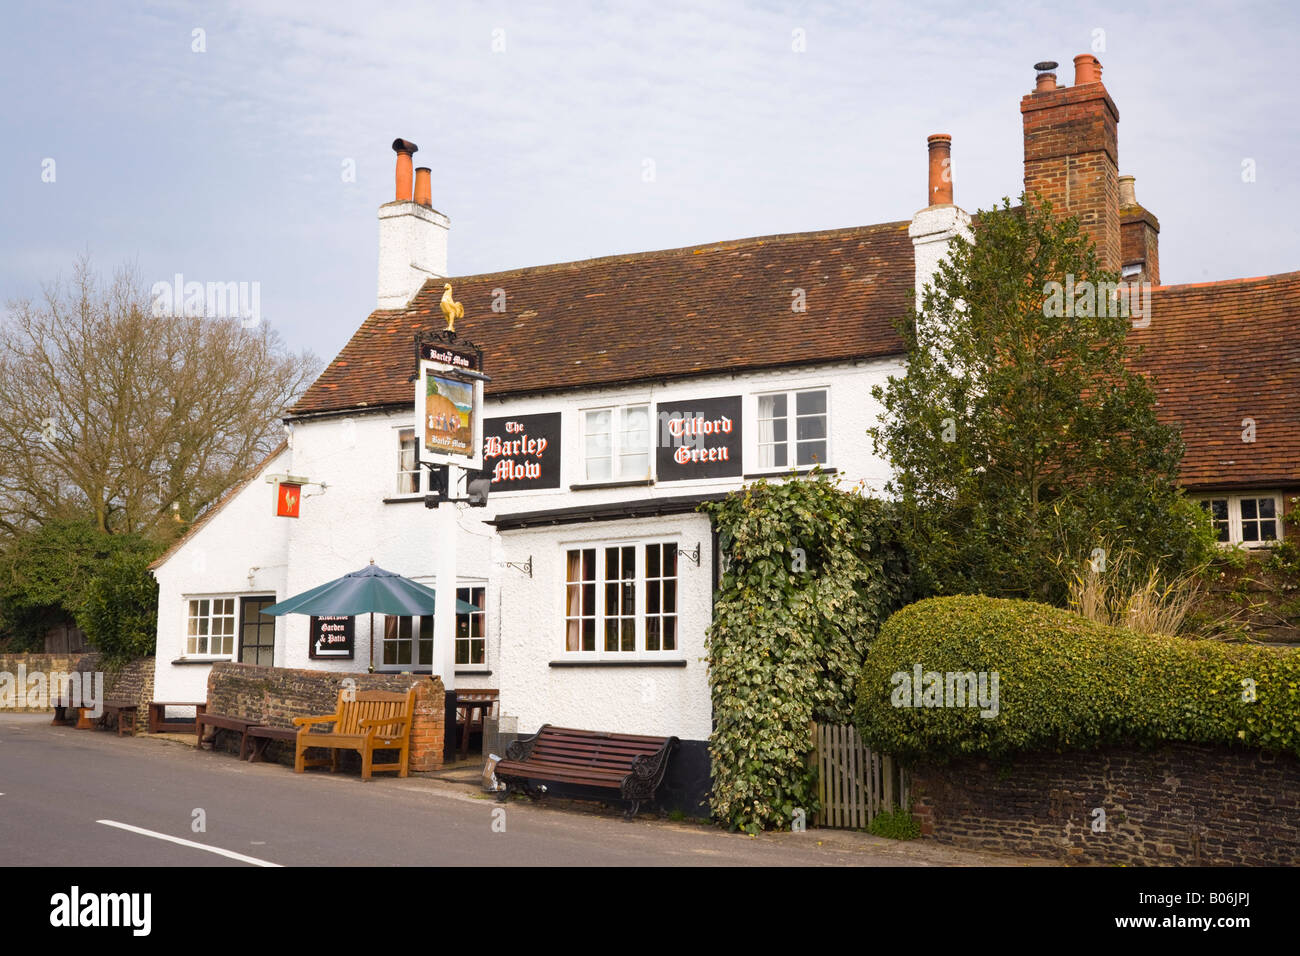 The 'Barley Mow' traditional rural village pub in Tilford Surrey England UK Britain - Stock Image